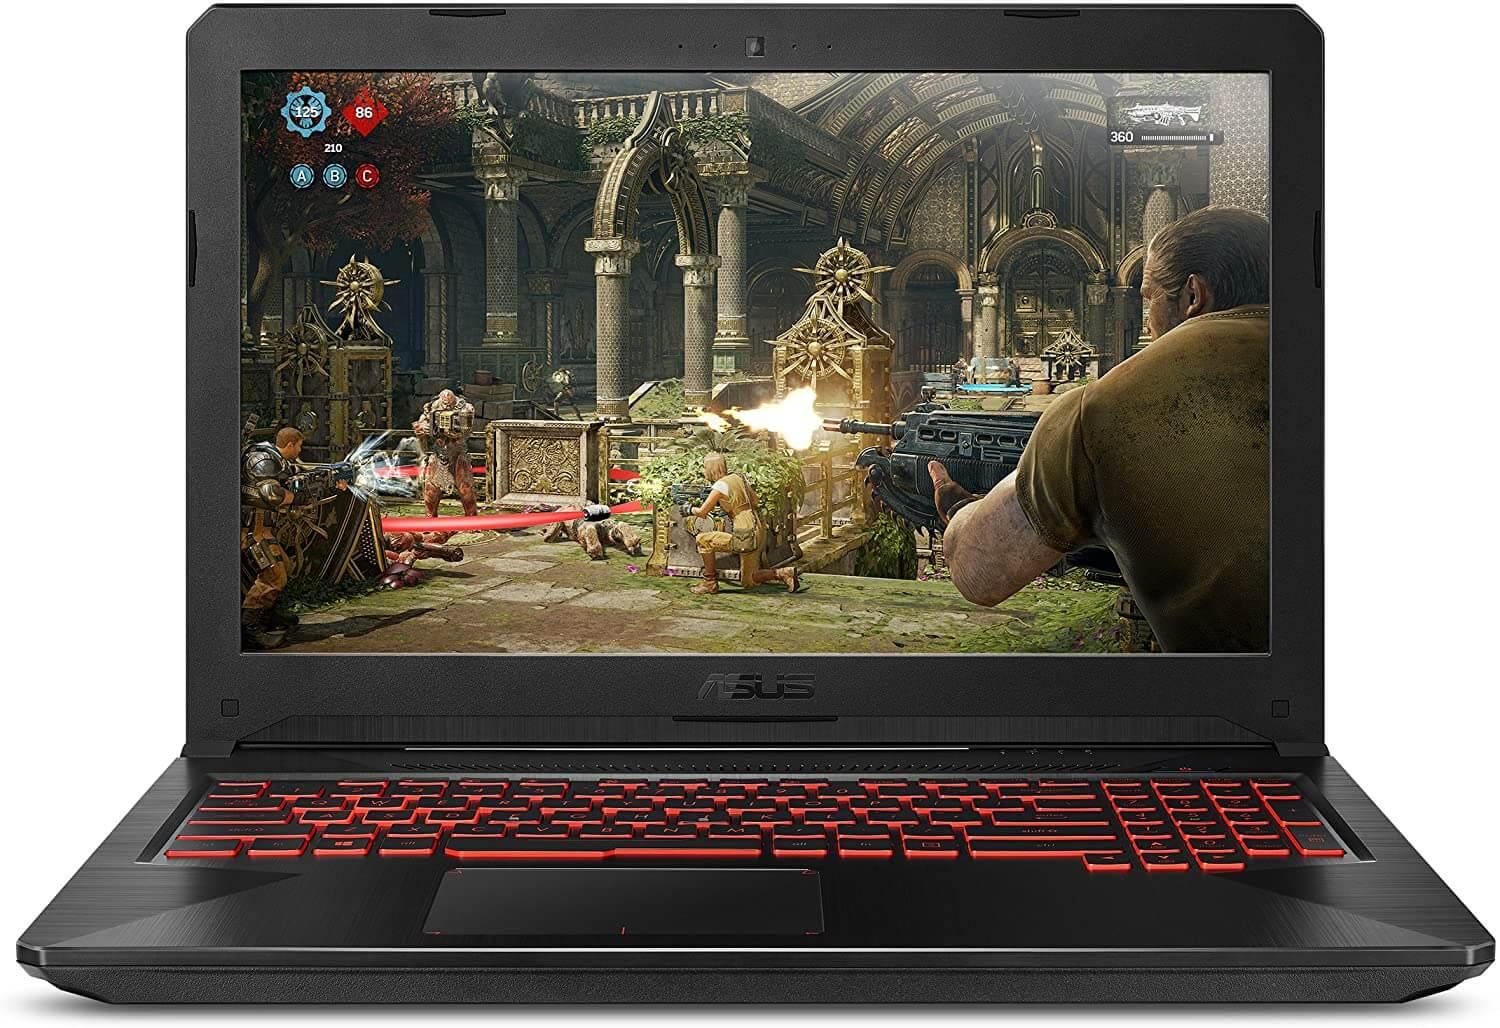 Asus TUF FX504 – Best Laptops With Dedicated Graphics Under 600